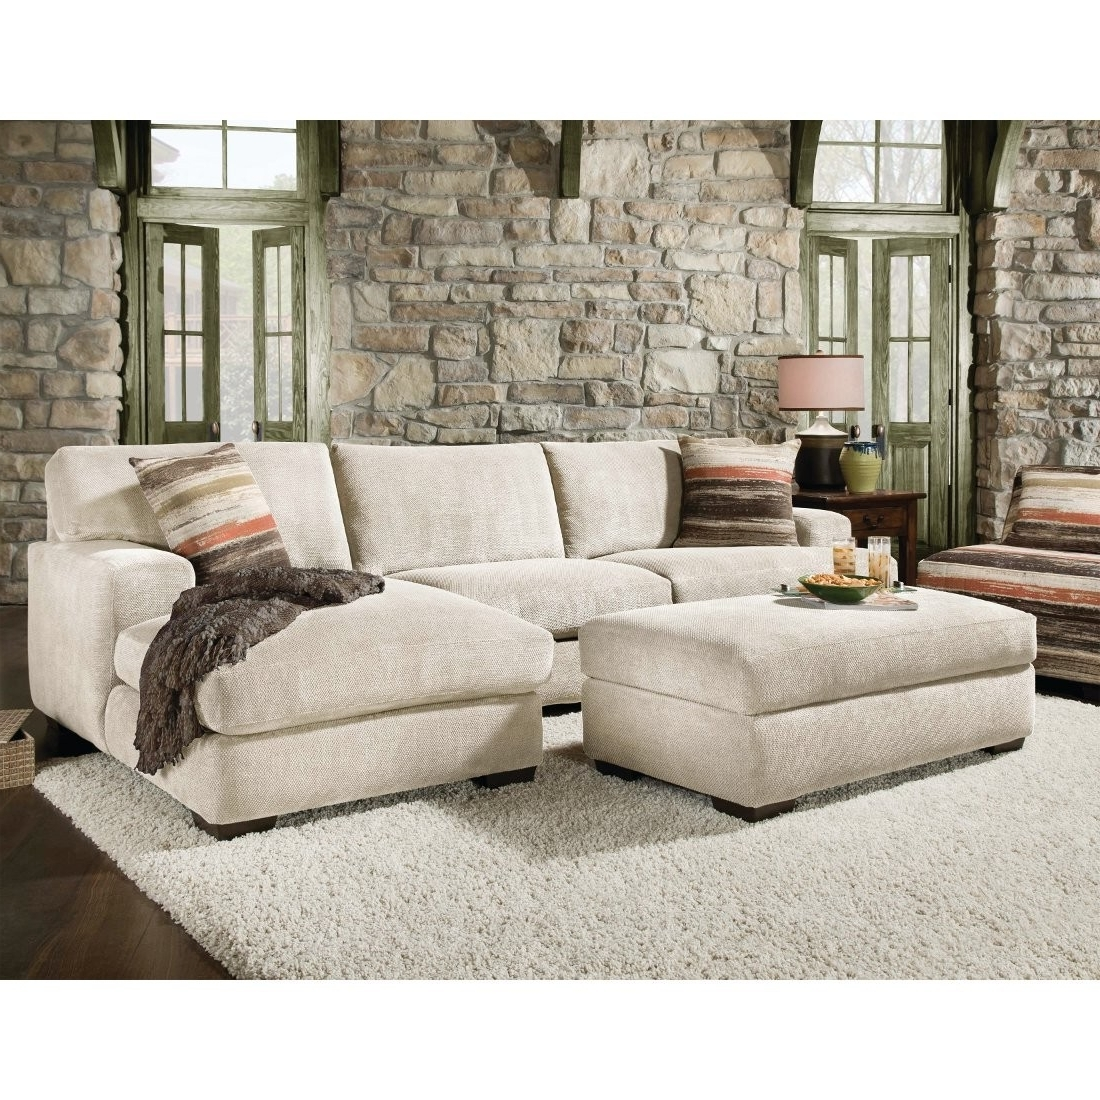 Favorite Sectional Sofa Design: Sectional Sofa With Chaise And Ottoman Intended For Sectional Sofas With Chaise Lounge And Ottoman (View 3 of 15)